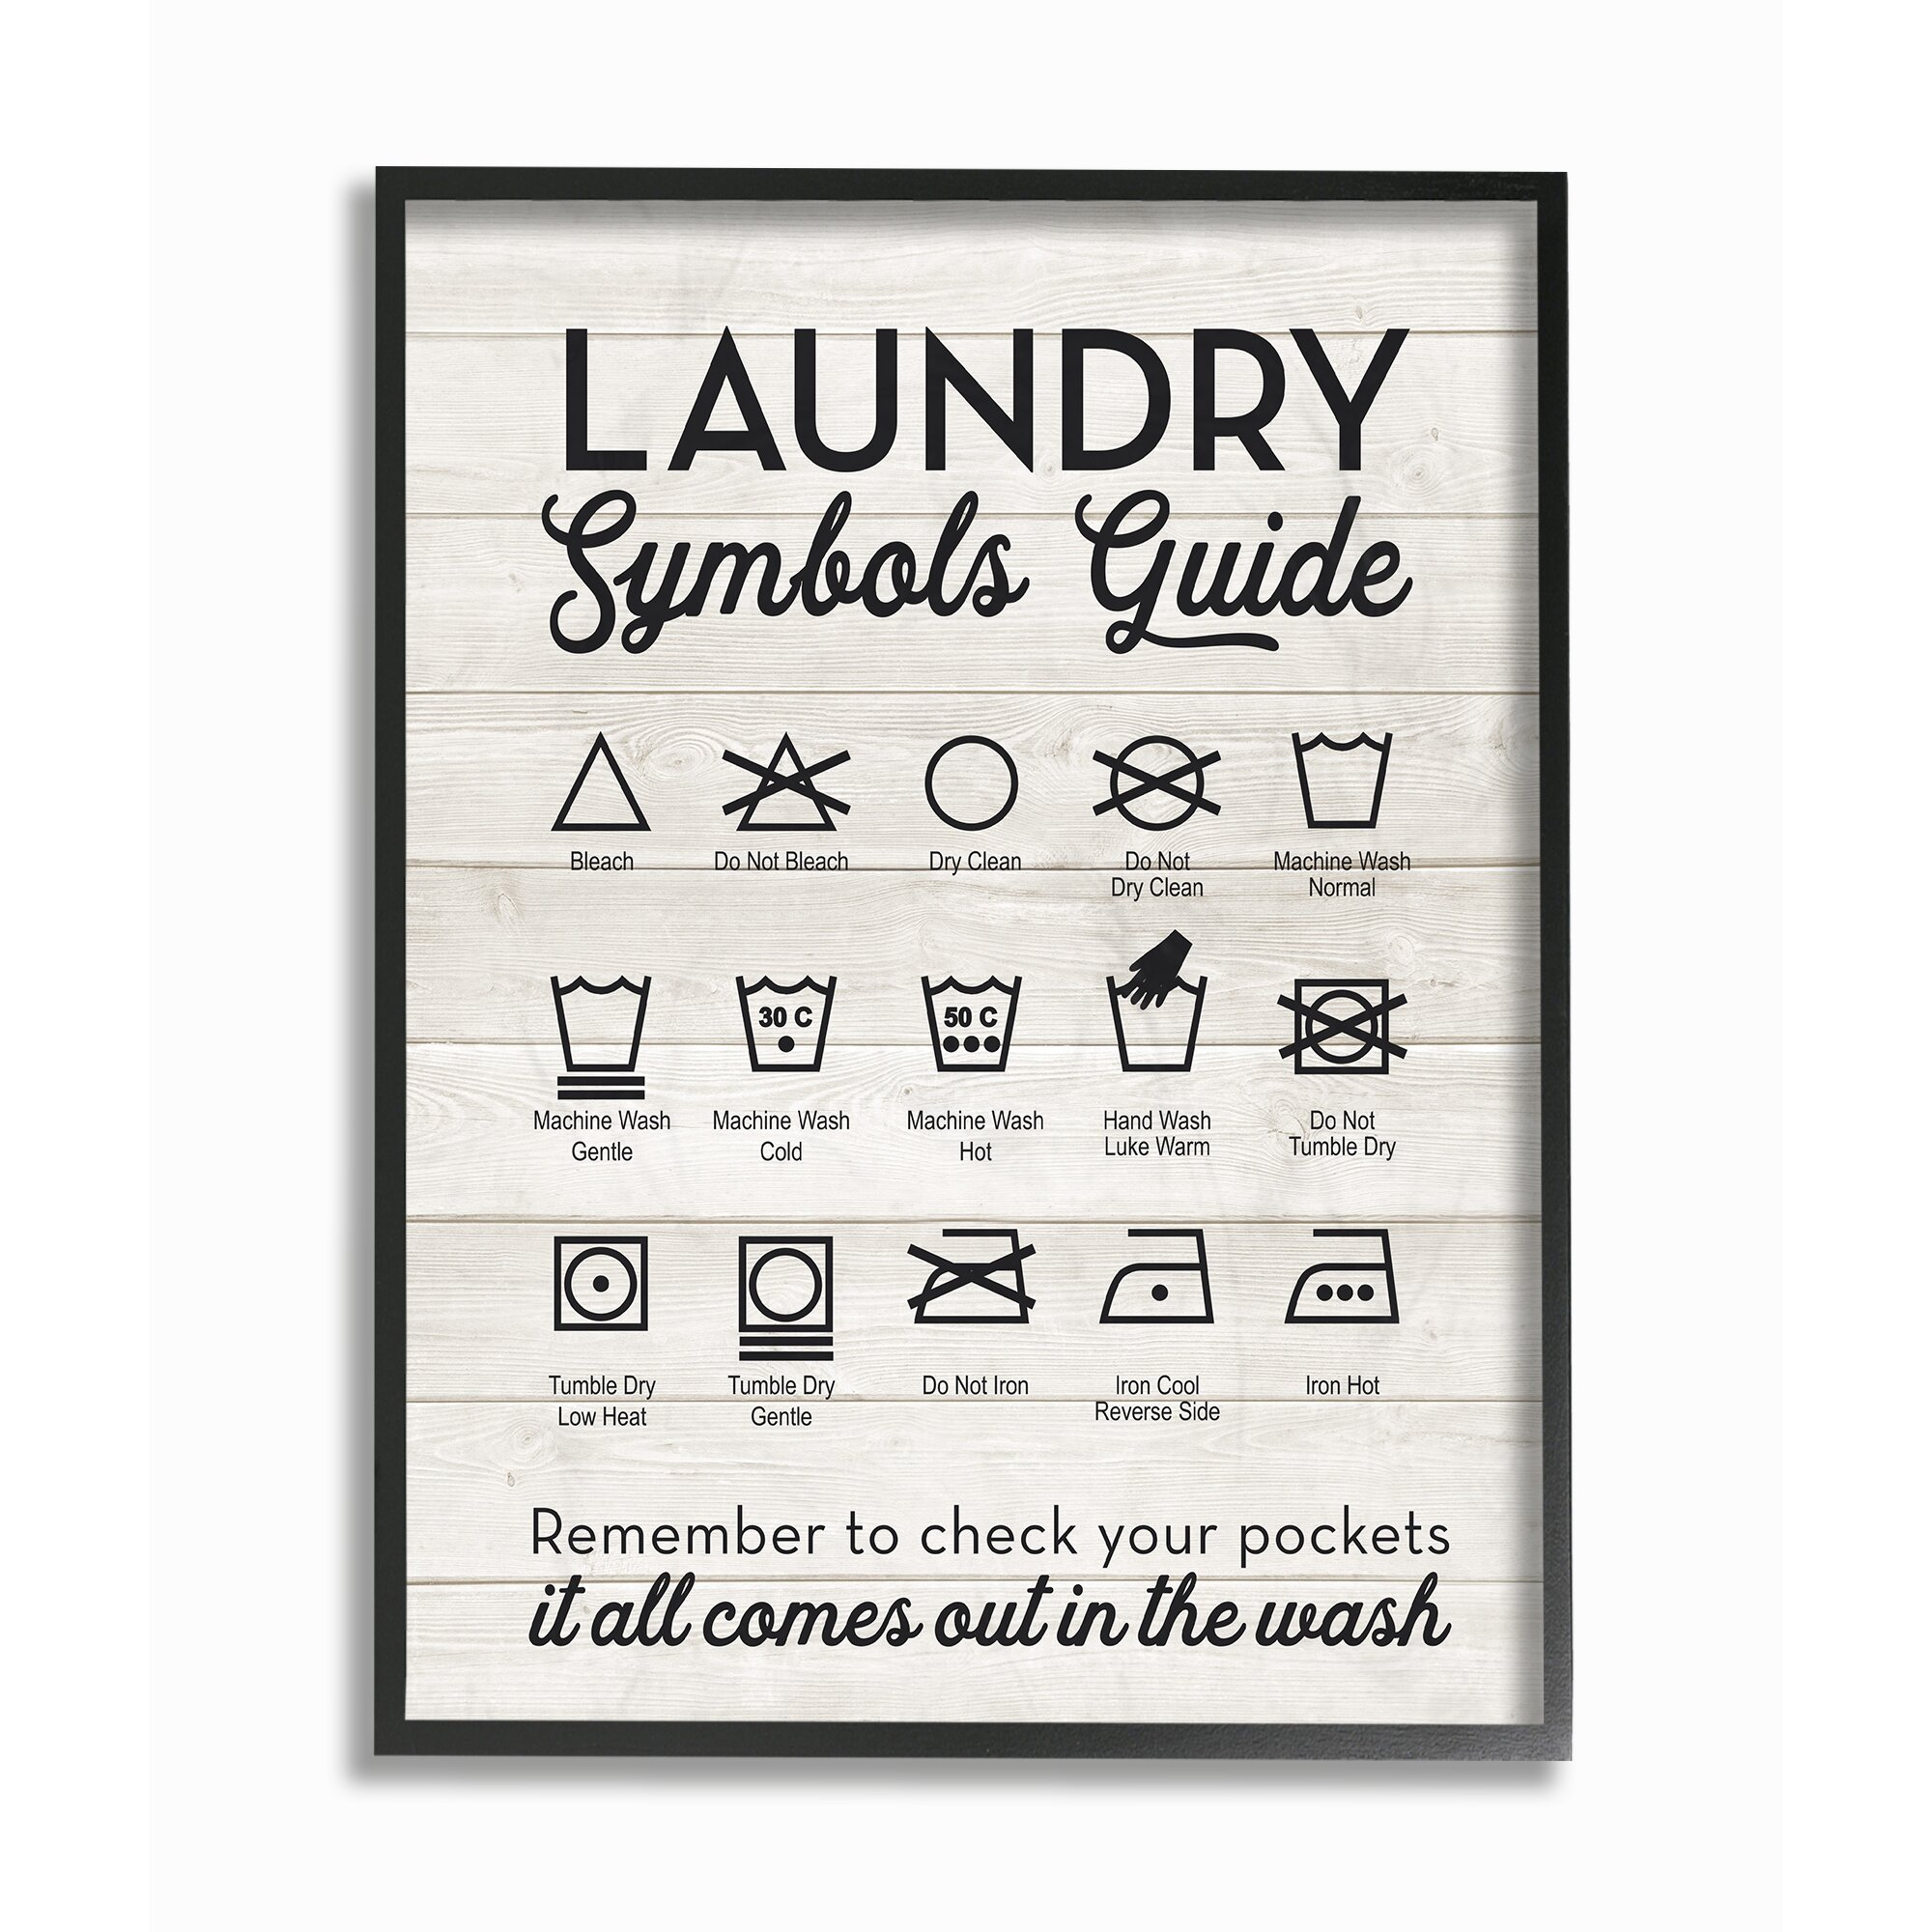 Laundry Symbols Guide Typography - Textural Art on Wood